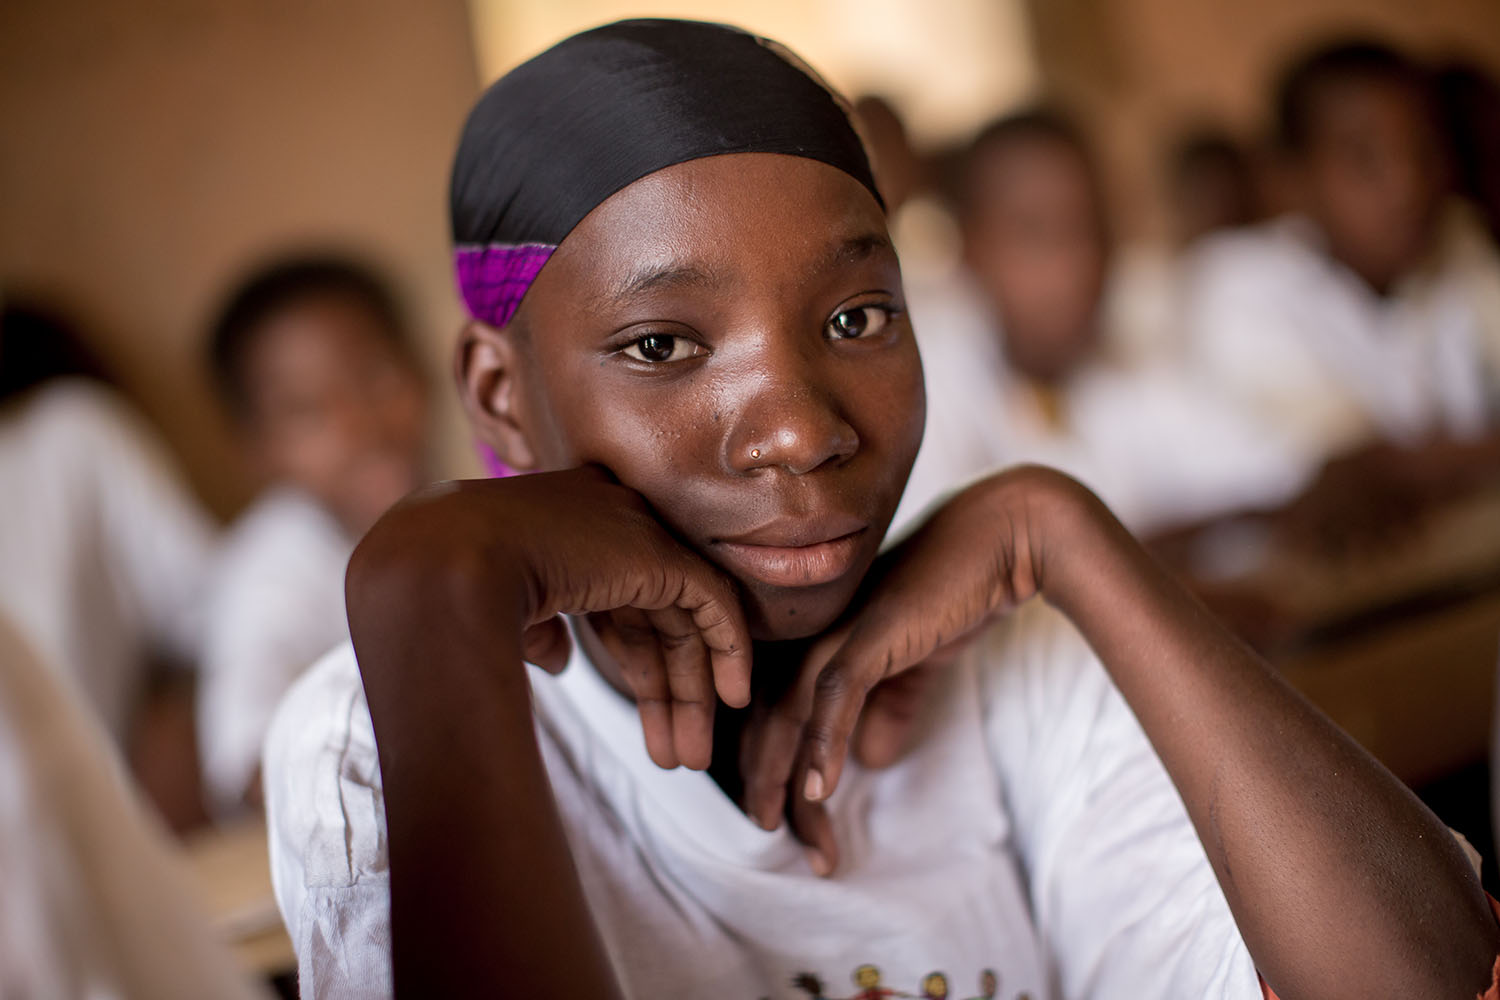 Adeoula, 12 years old (RELEASED) at the Accelerated Learning Centre of Bourougoundye, Gao where ongoing conflicts in the northern regions of Mali continue to have devastating effects education. UNICEF supports the re-opening of schools and alternative edu